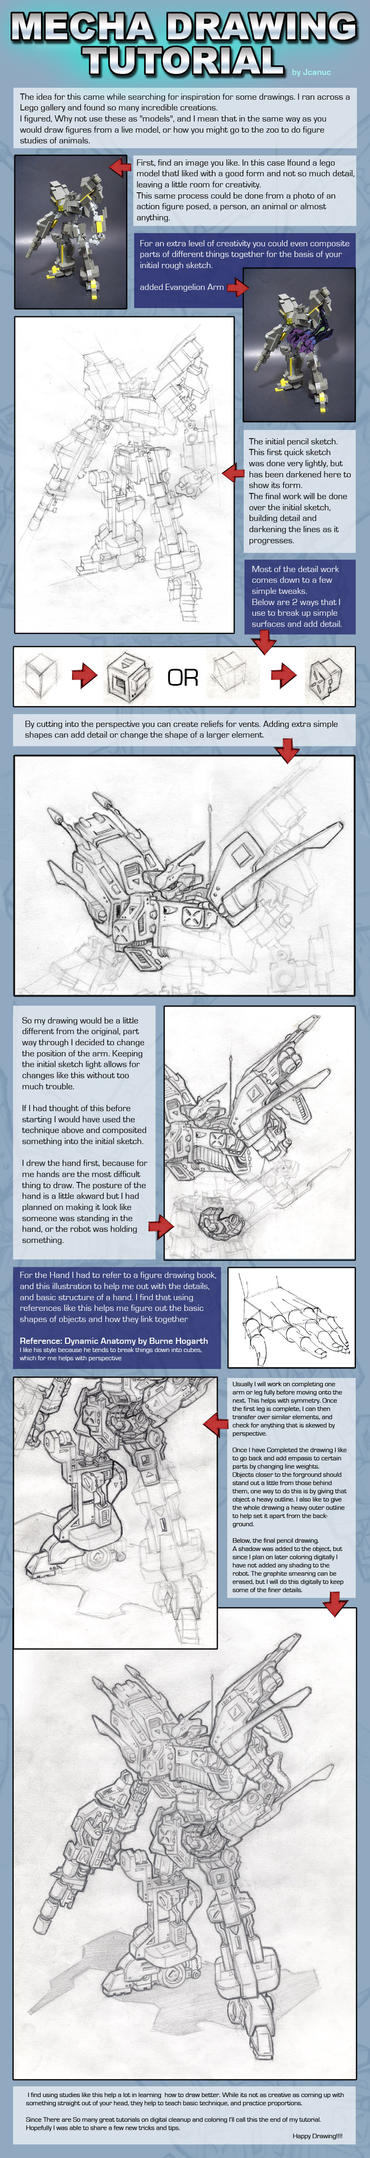 Mecha Drawing Tutorial by jcanuc